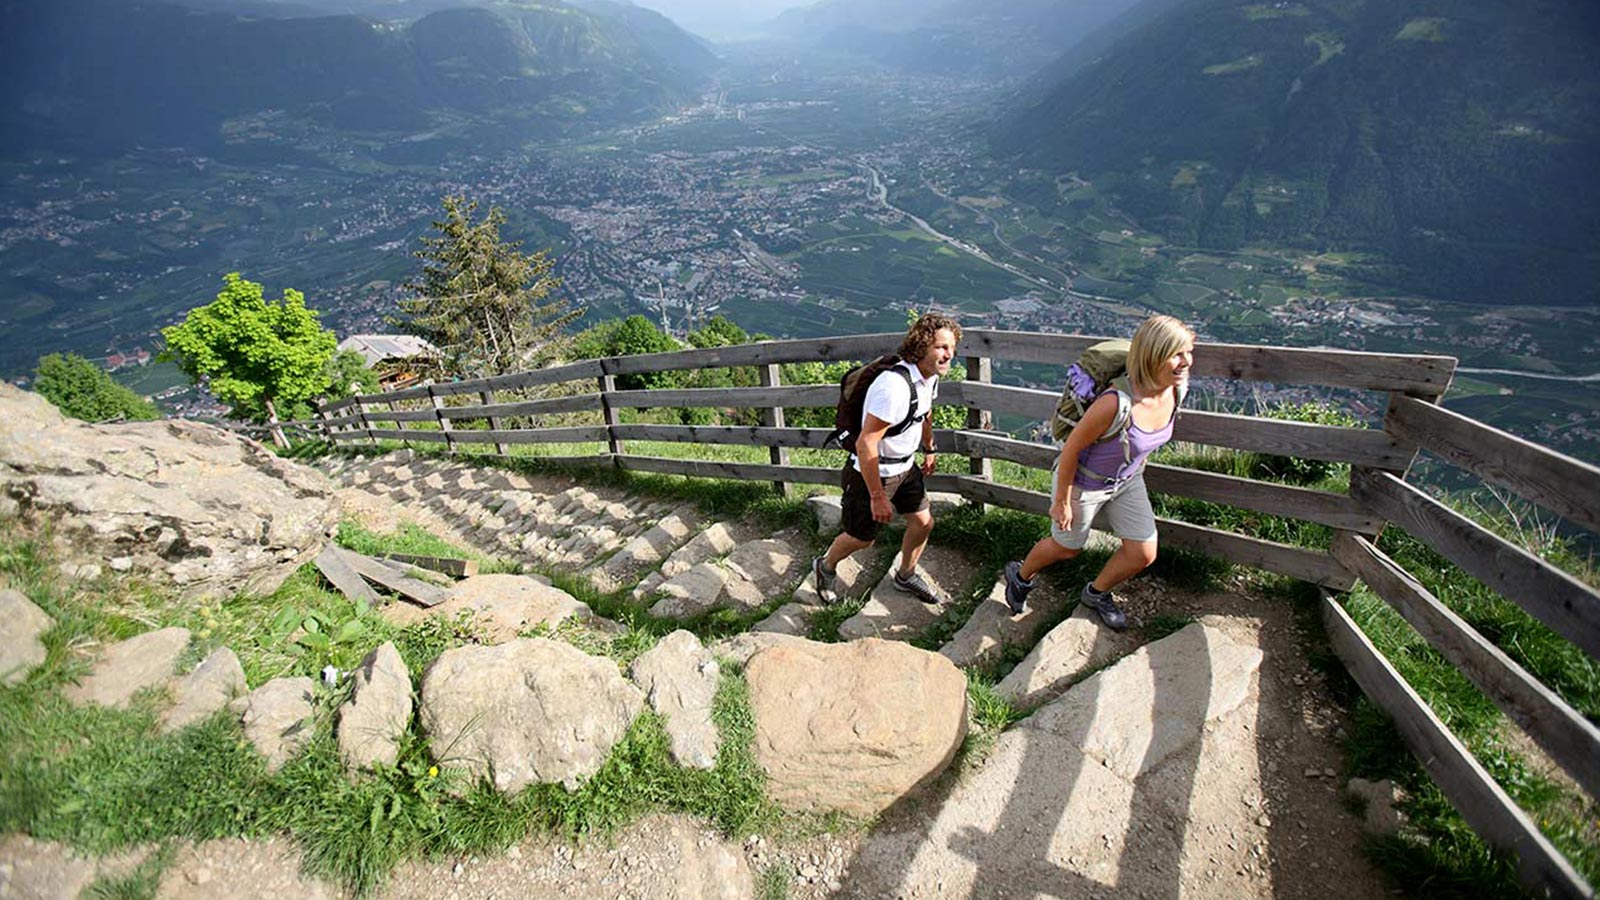 A couple hiking on a path with a view of the city of Merano